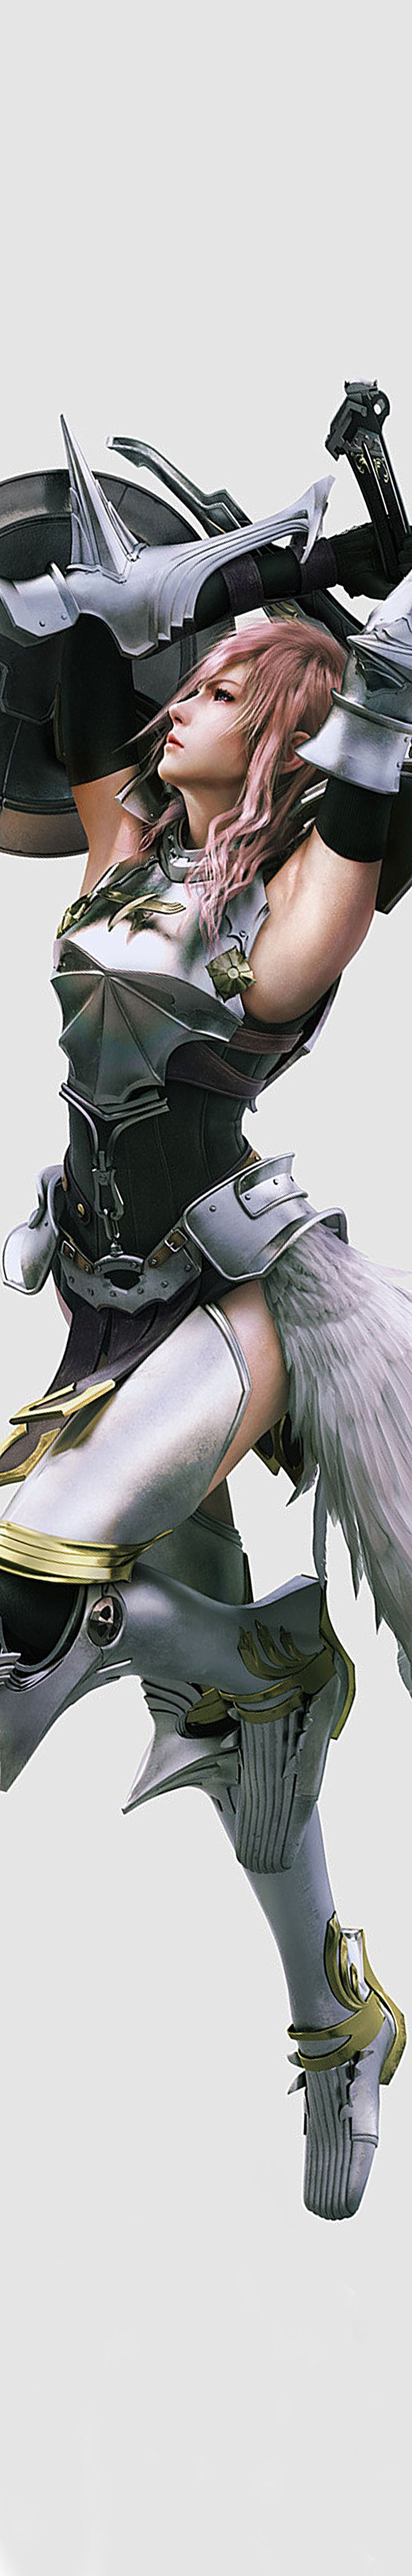 Lightning Farron. Just being the awesome heroine that she is.